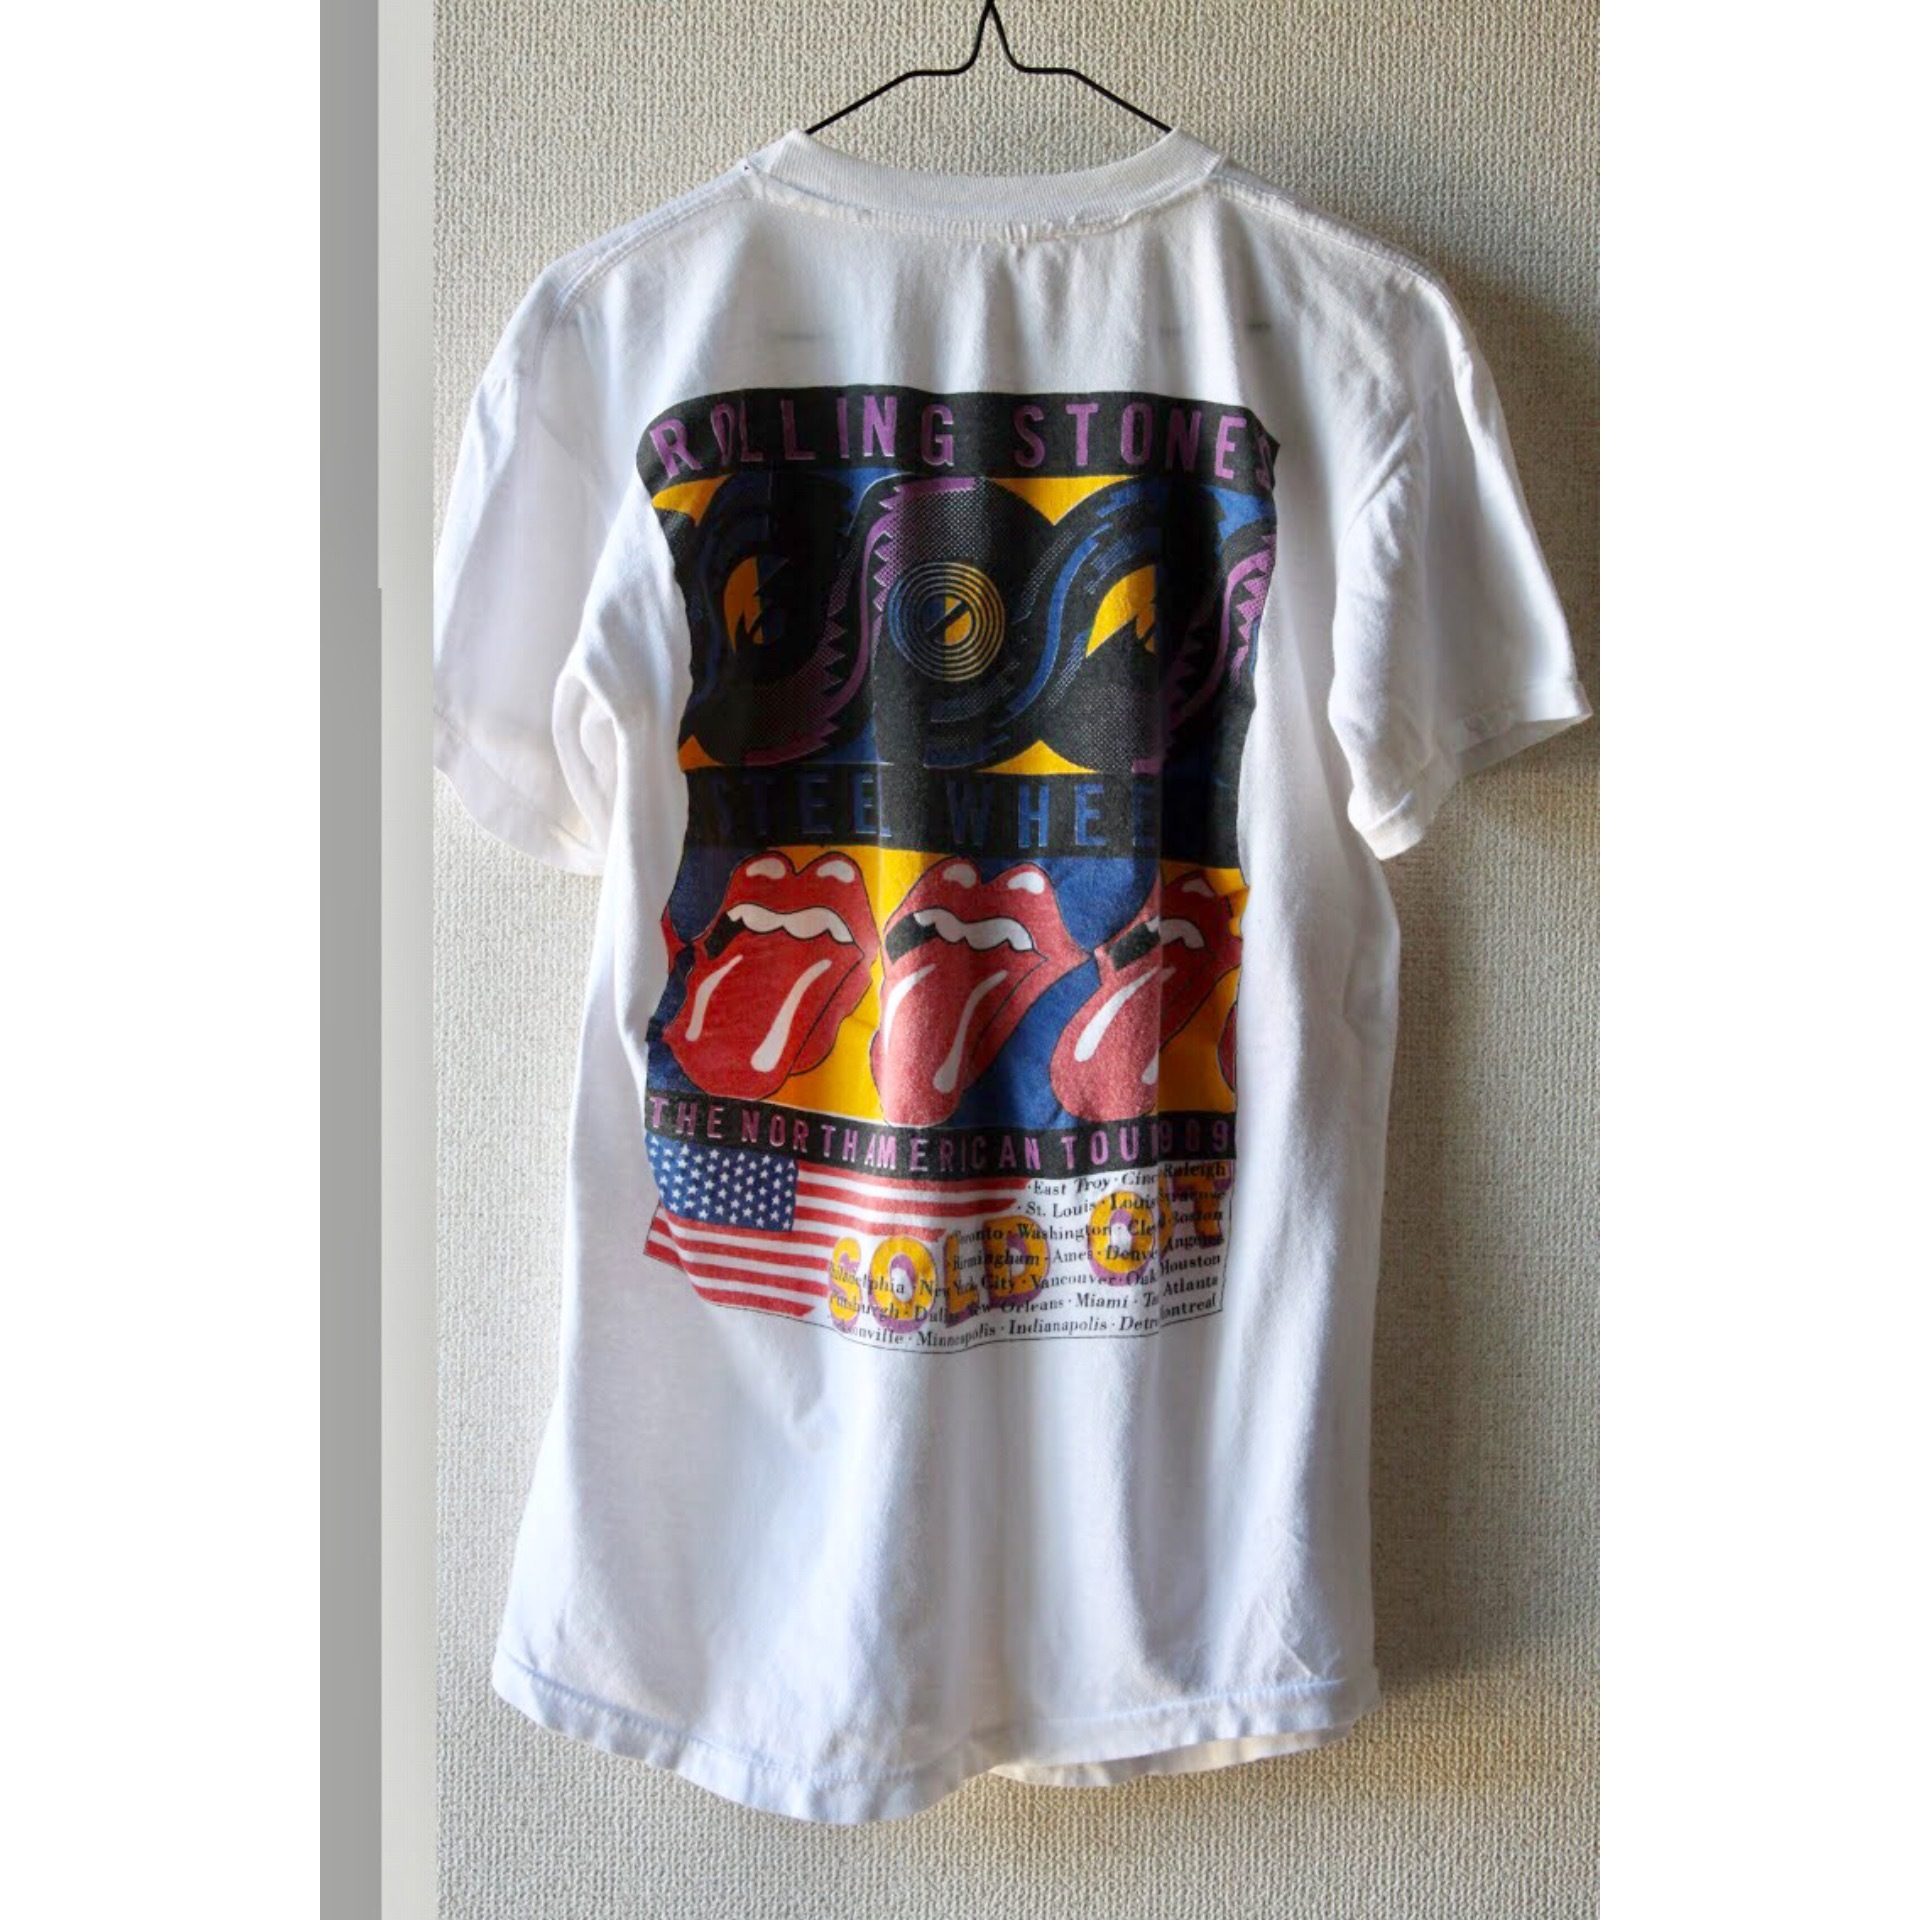 Vintage The Rolling Stones 1989 tour t shirt